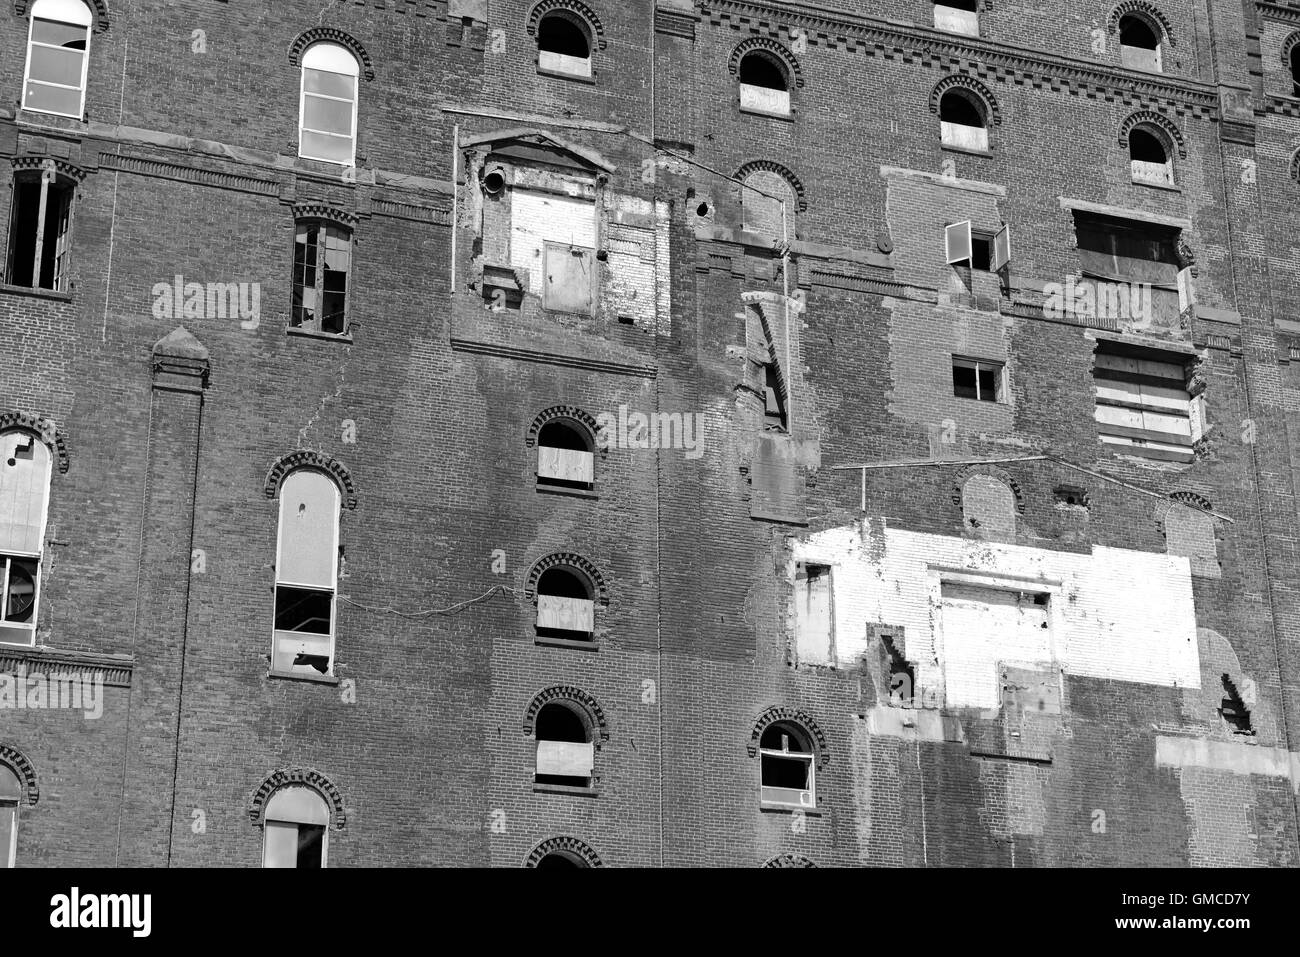 Abandoned brick building in lot with broken windows - Stock Image